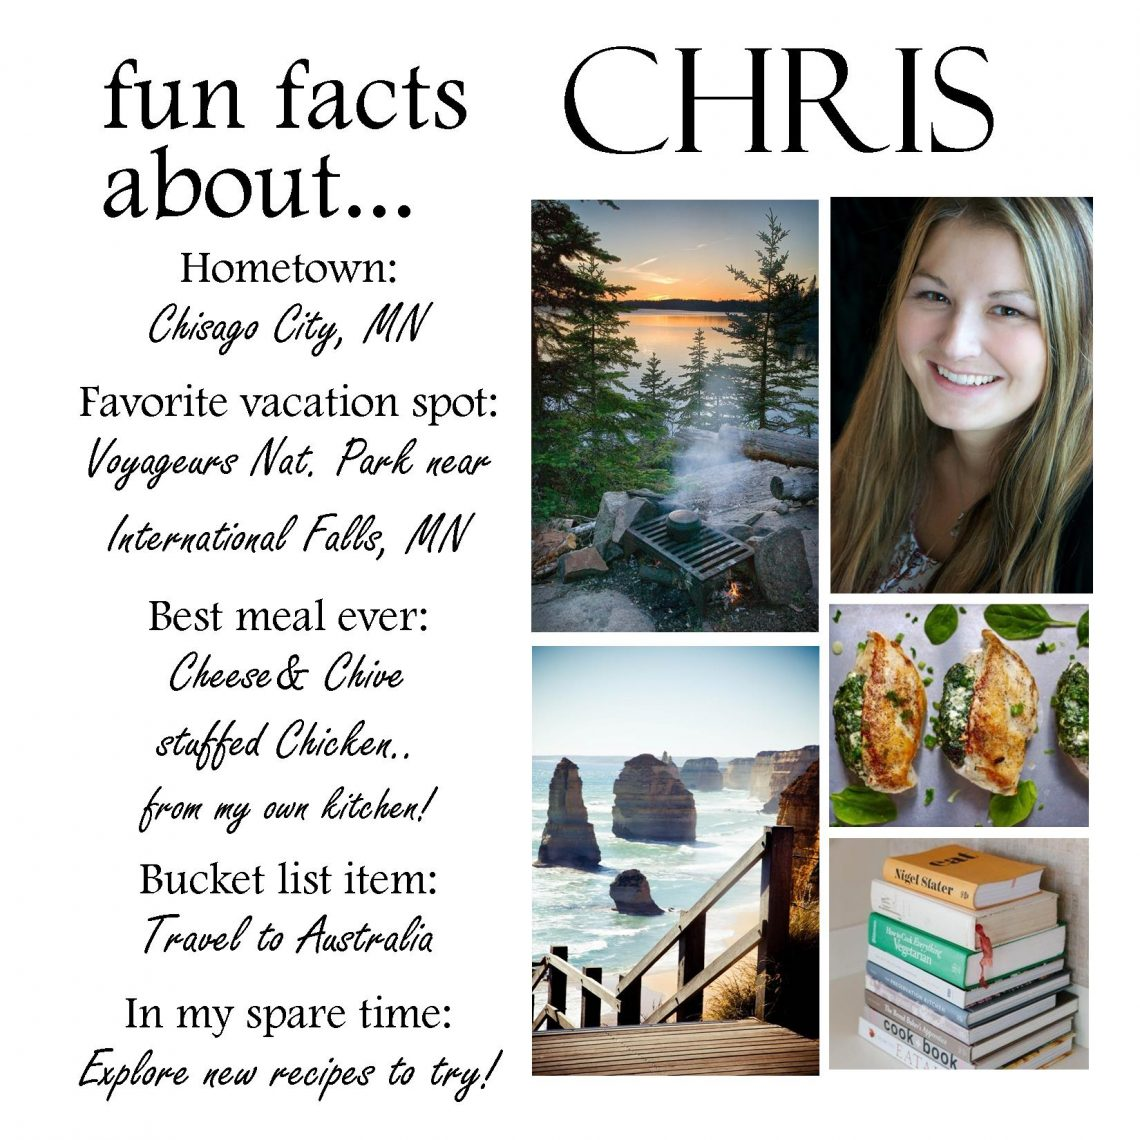 chris fun fact - Copy